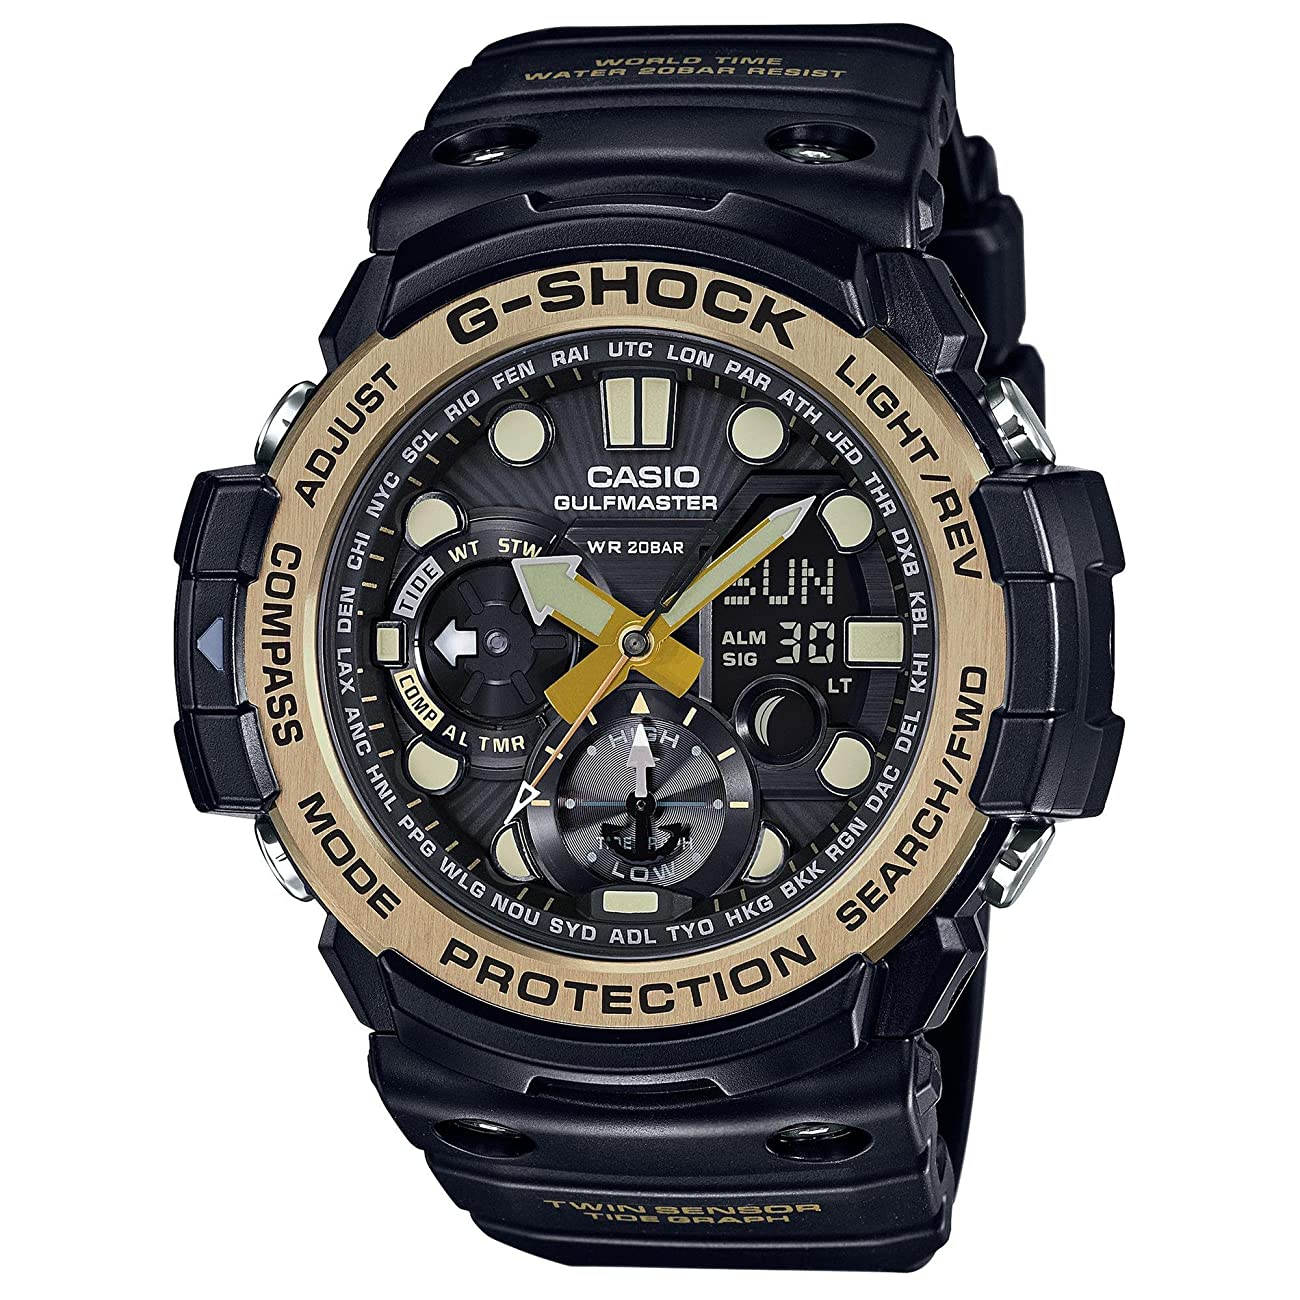 Men's Casio G-Shock Master of G Series Black and Vintage Gold-Tone Watch GN1000GB-1A 0